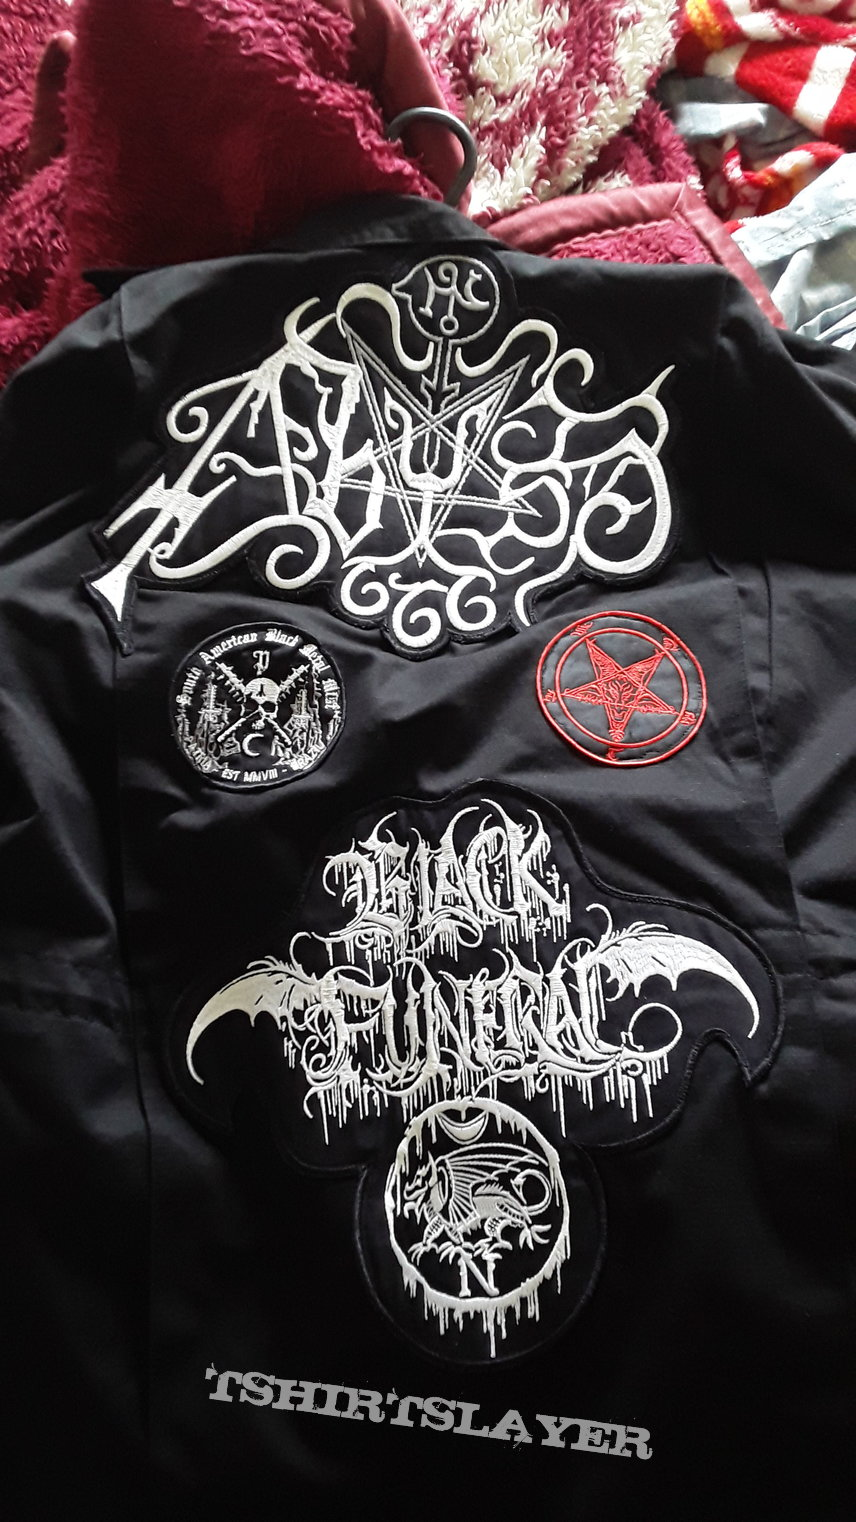 Black Metal addiction